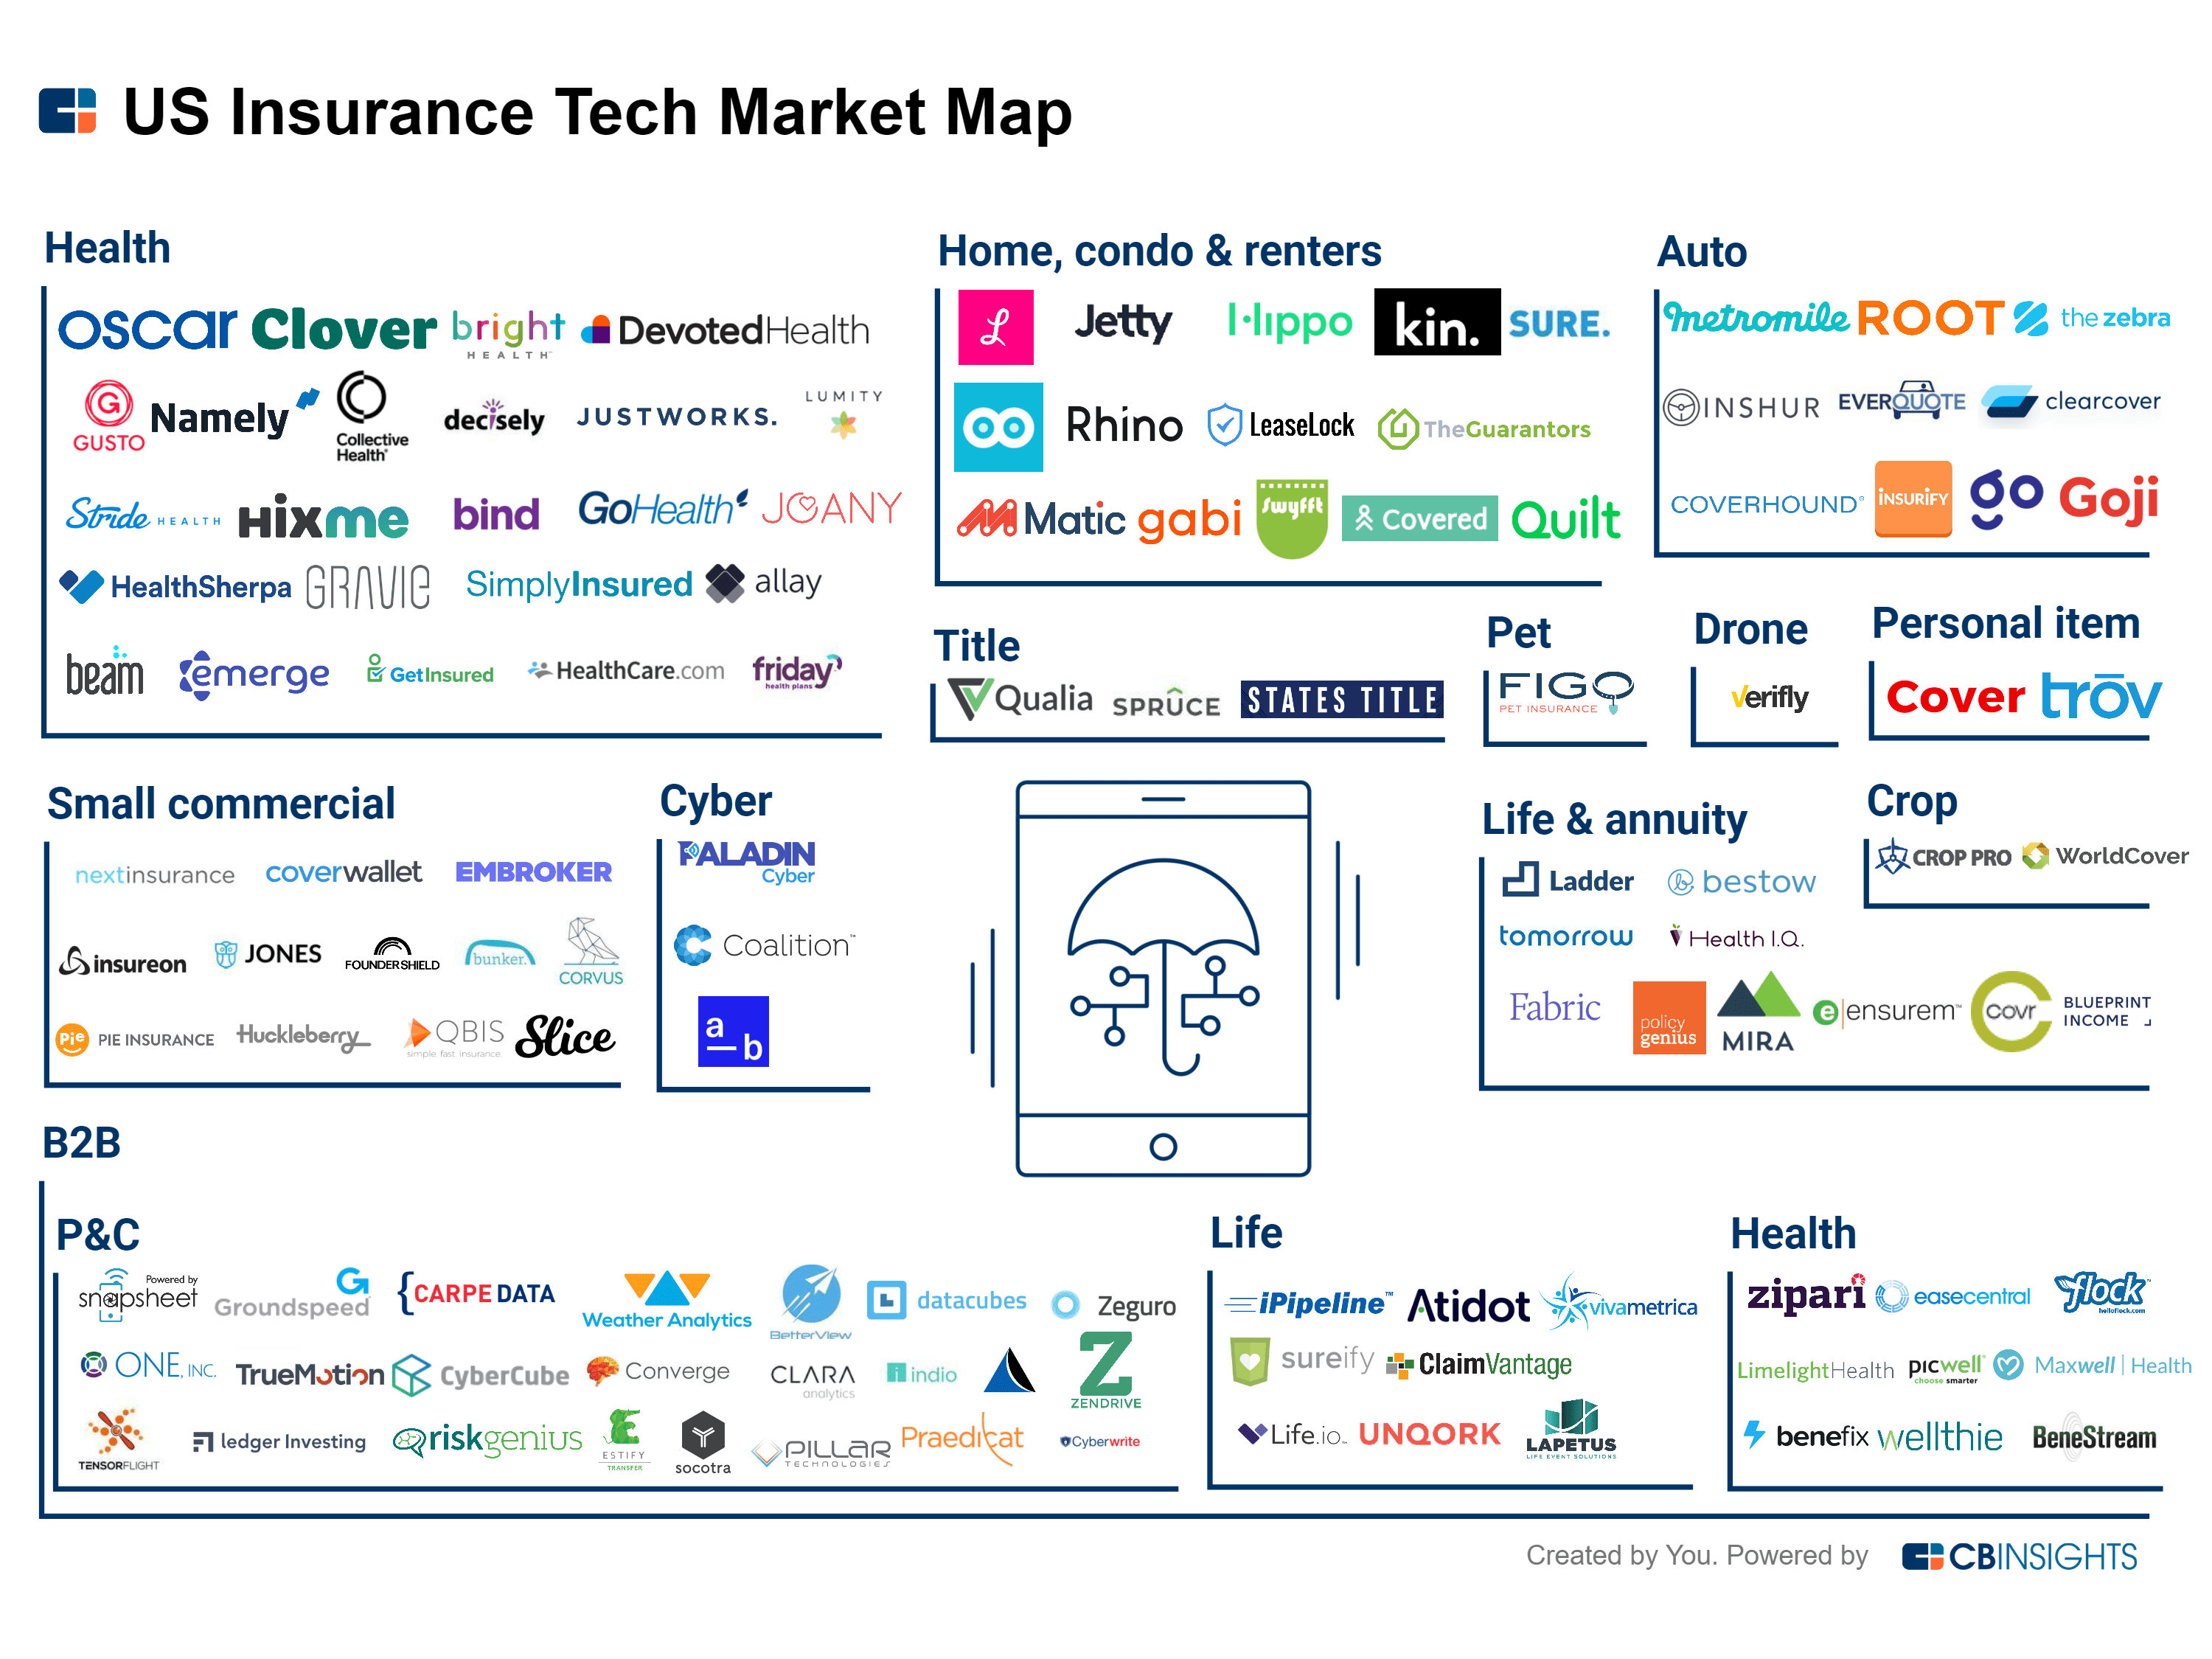 DarcMatter - Insurance (CB Insights)